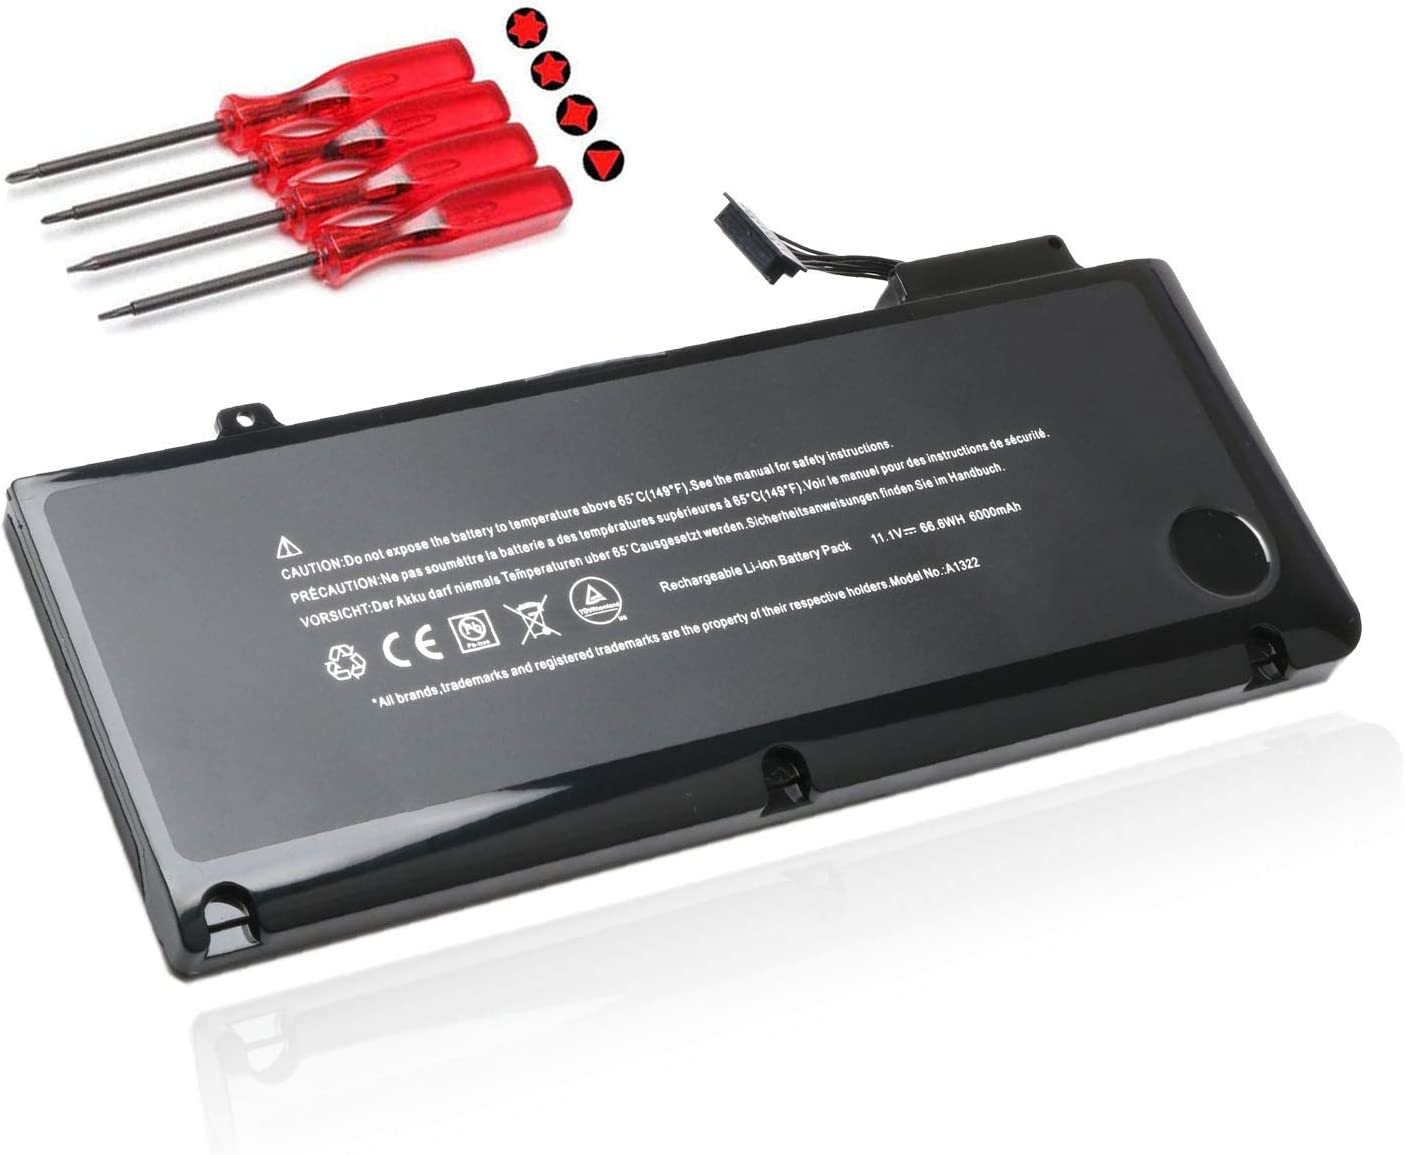 "A1322 Laptop Battery for MacBook Pro 13"" A1322 A1278 (Mid 2009, Mid 2010, Early and Late 2011, Mid 2012 Version) Replacement Batteries MB990LL/A MB991ll/A MC374ll/A MC375LL/A MC700ll/A MD101LLA"